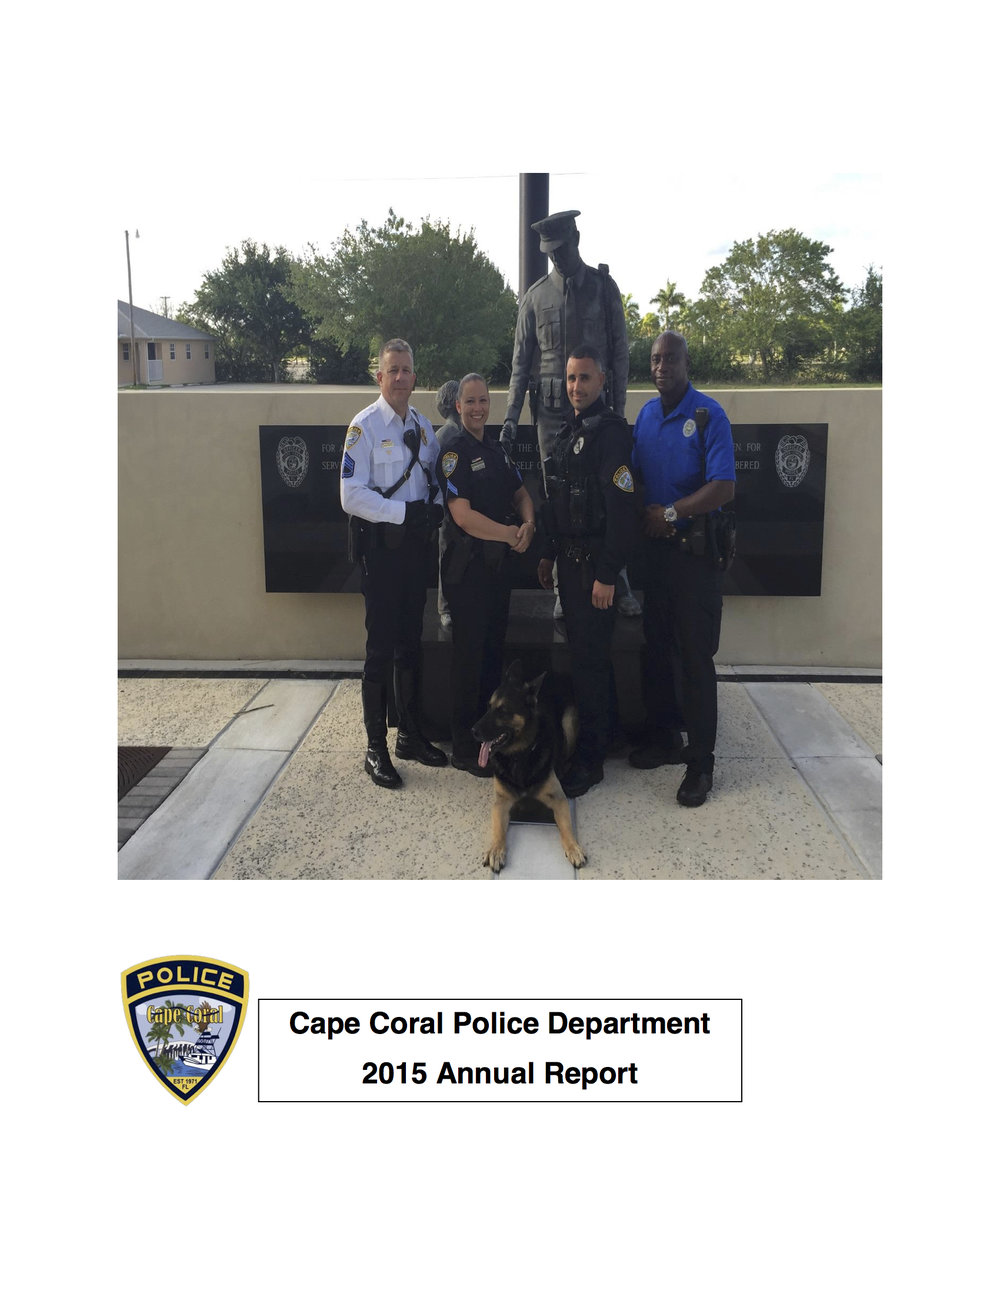 Cape Coral Police Department 2015 Annual Report - The annual report provides a bureau-by-bureau look at the